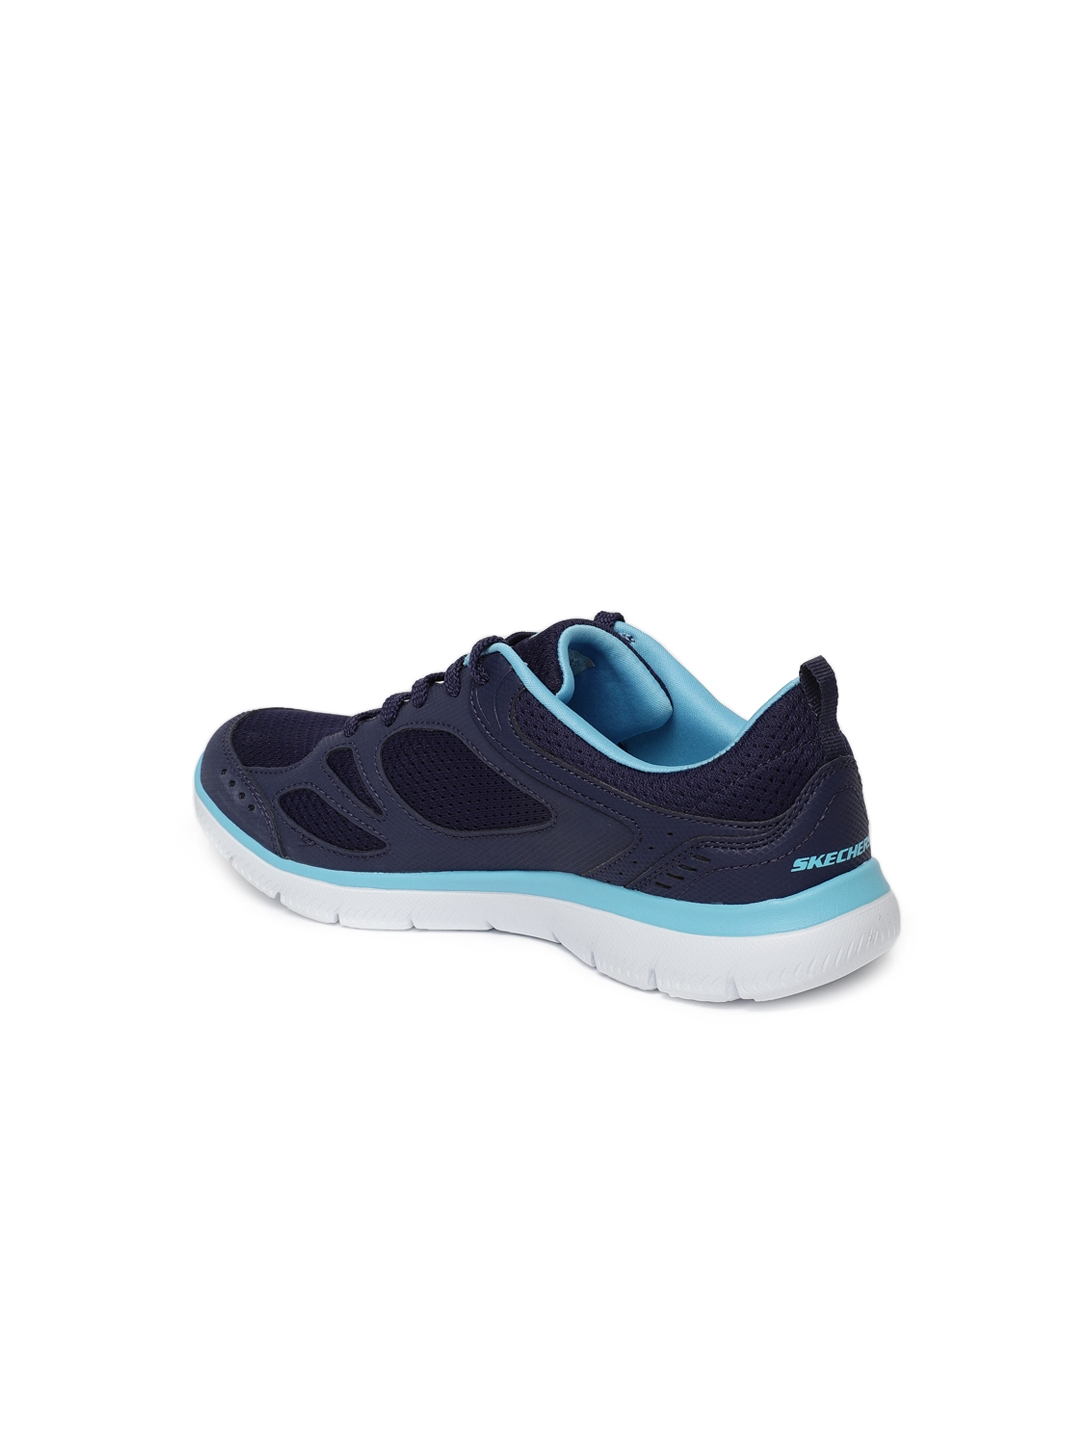 43edf1e55a Buy Skechers Women Blue Summits Suited Sneakers - Casual Shoes for ...